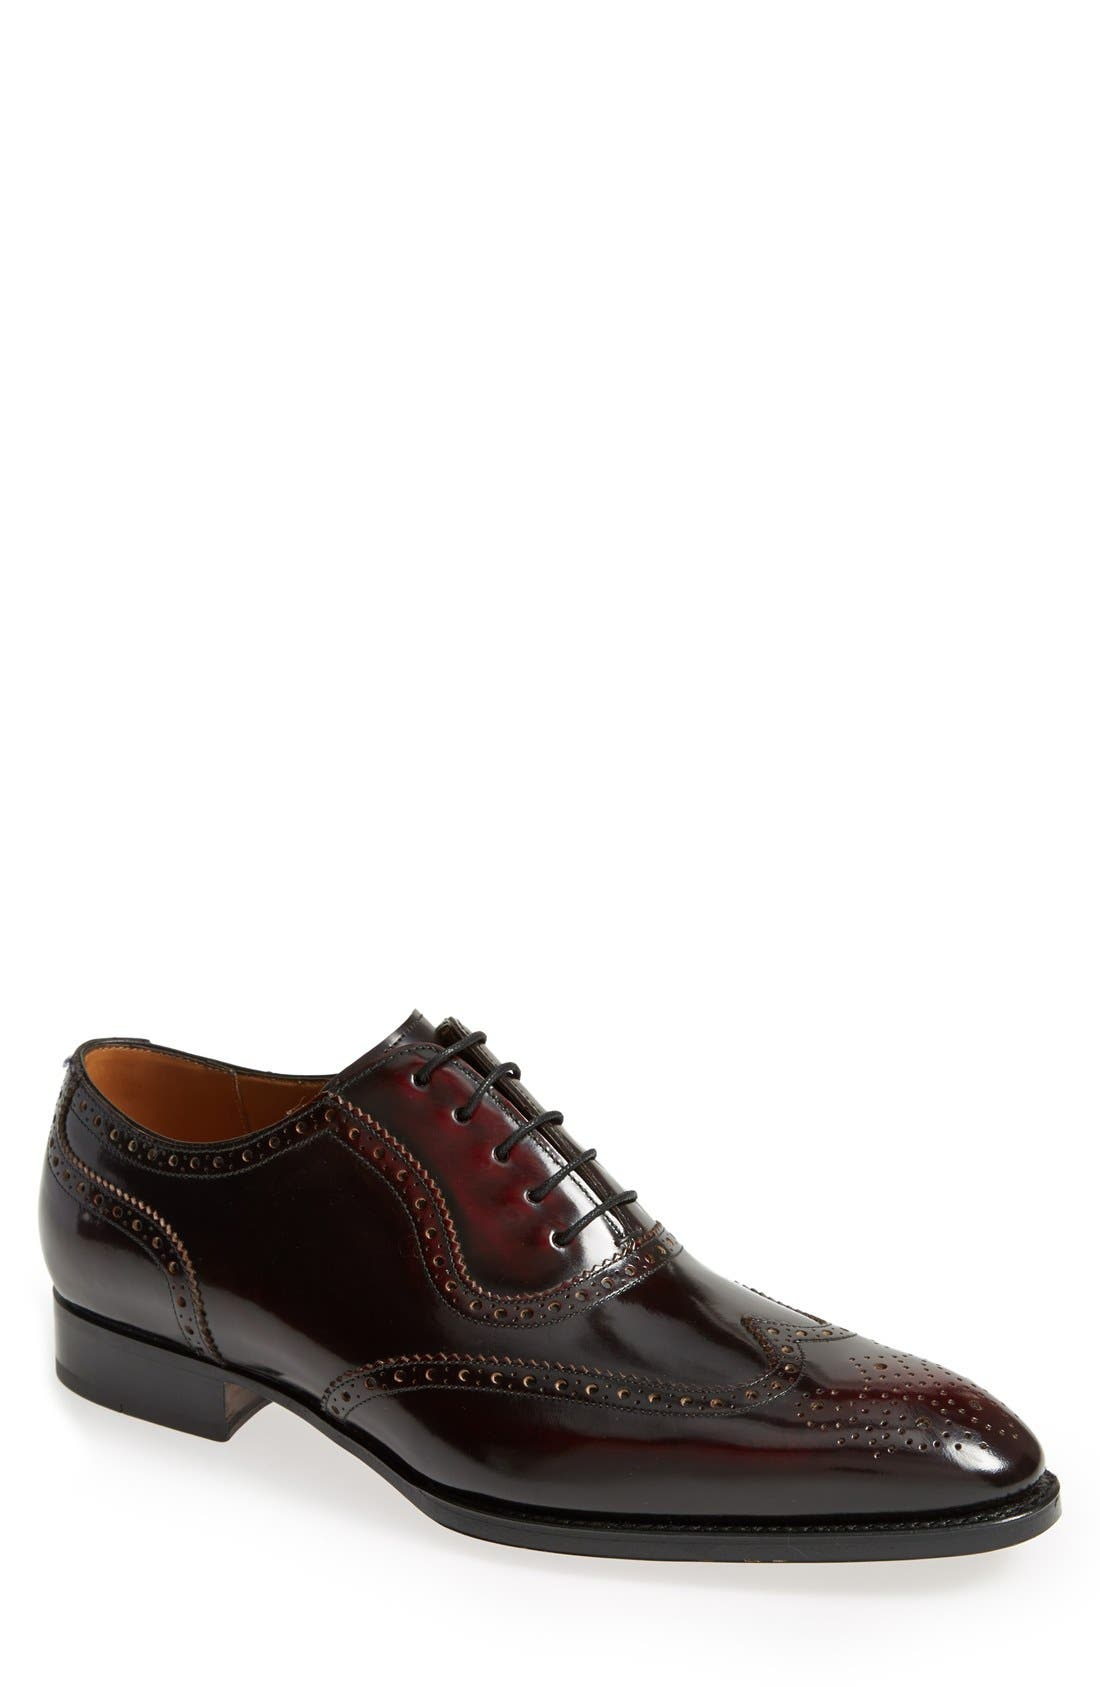 'Wexford' Wingtip,                         Main,                         color, BORDEAUX